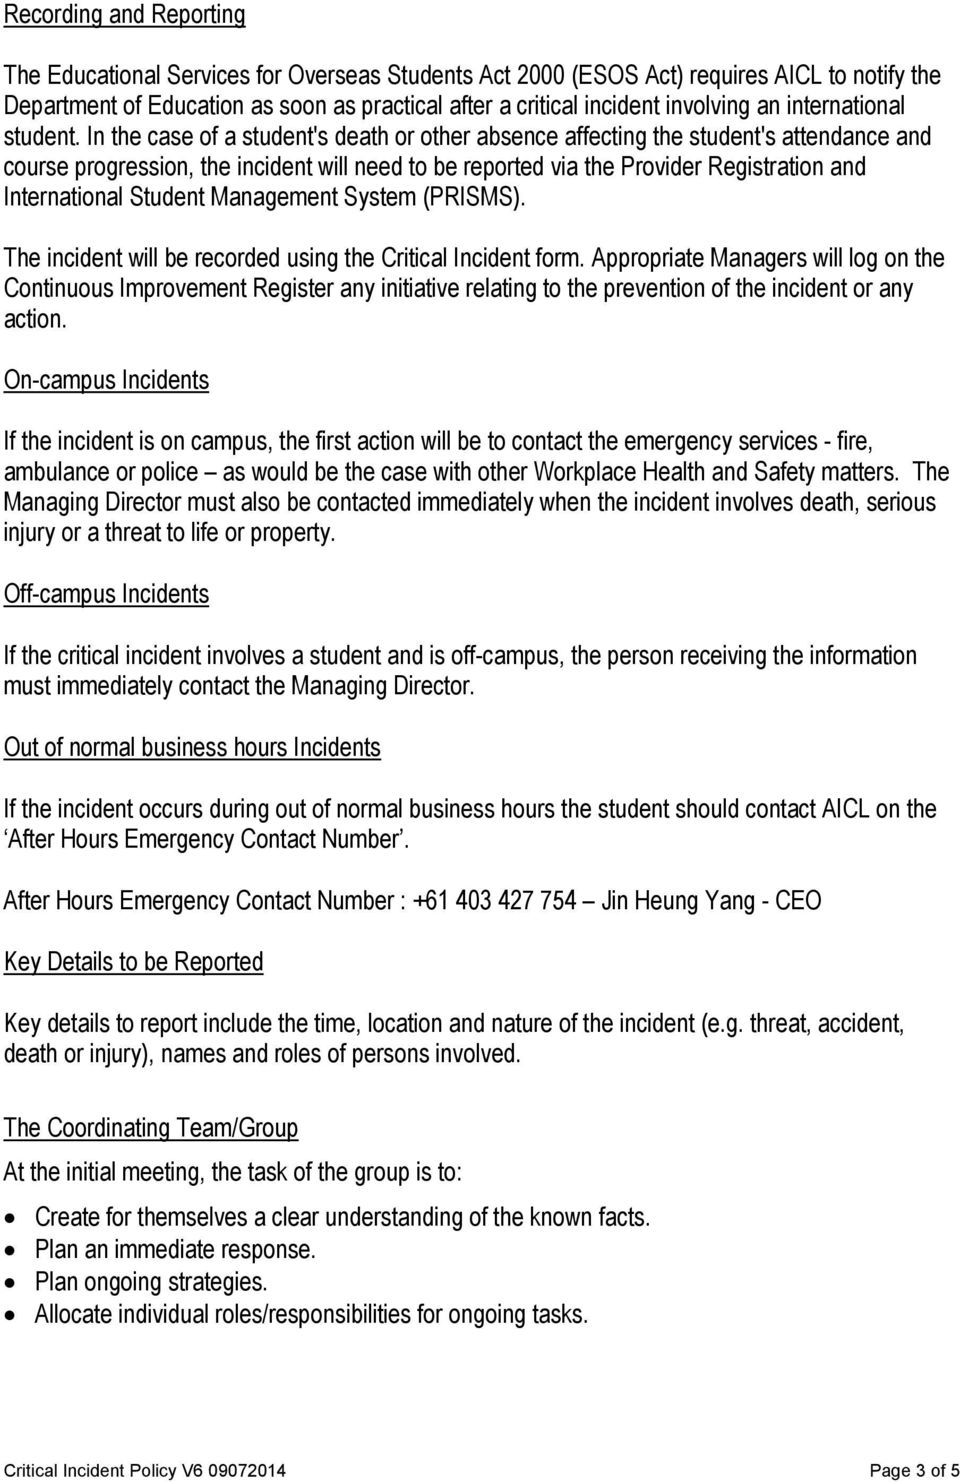 In the case of a student's death or other absence affecting the student's attendance and course progression, the incident will need to be reported via the Provider Registration and International